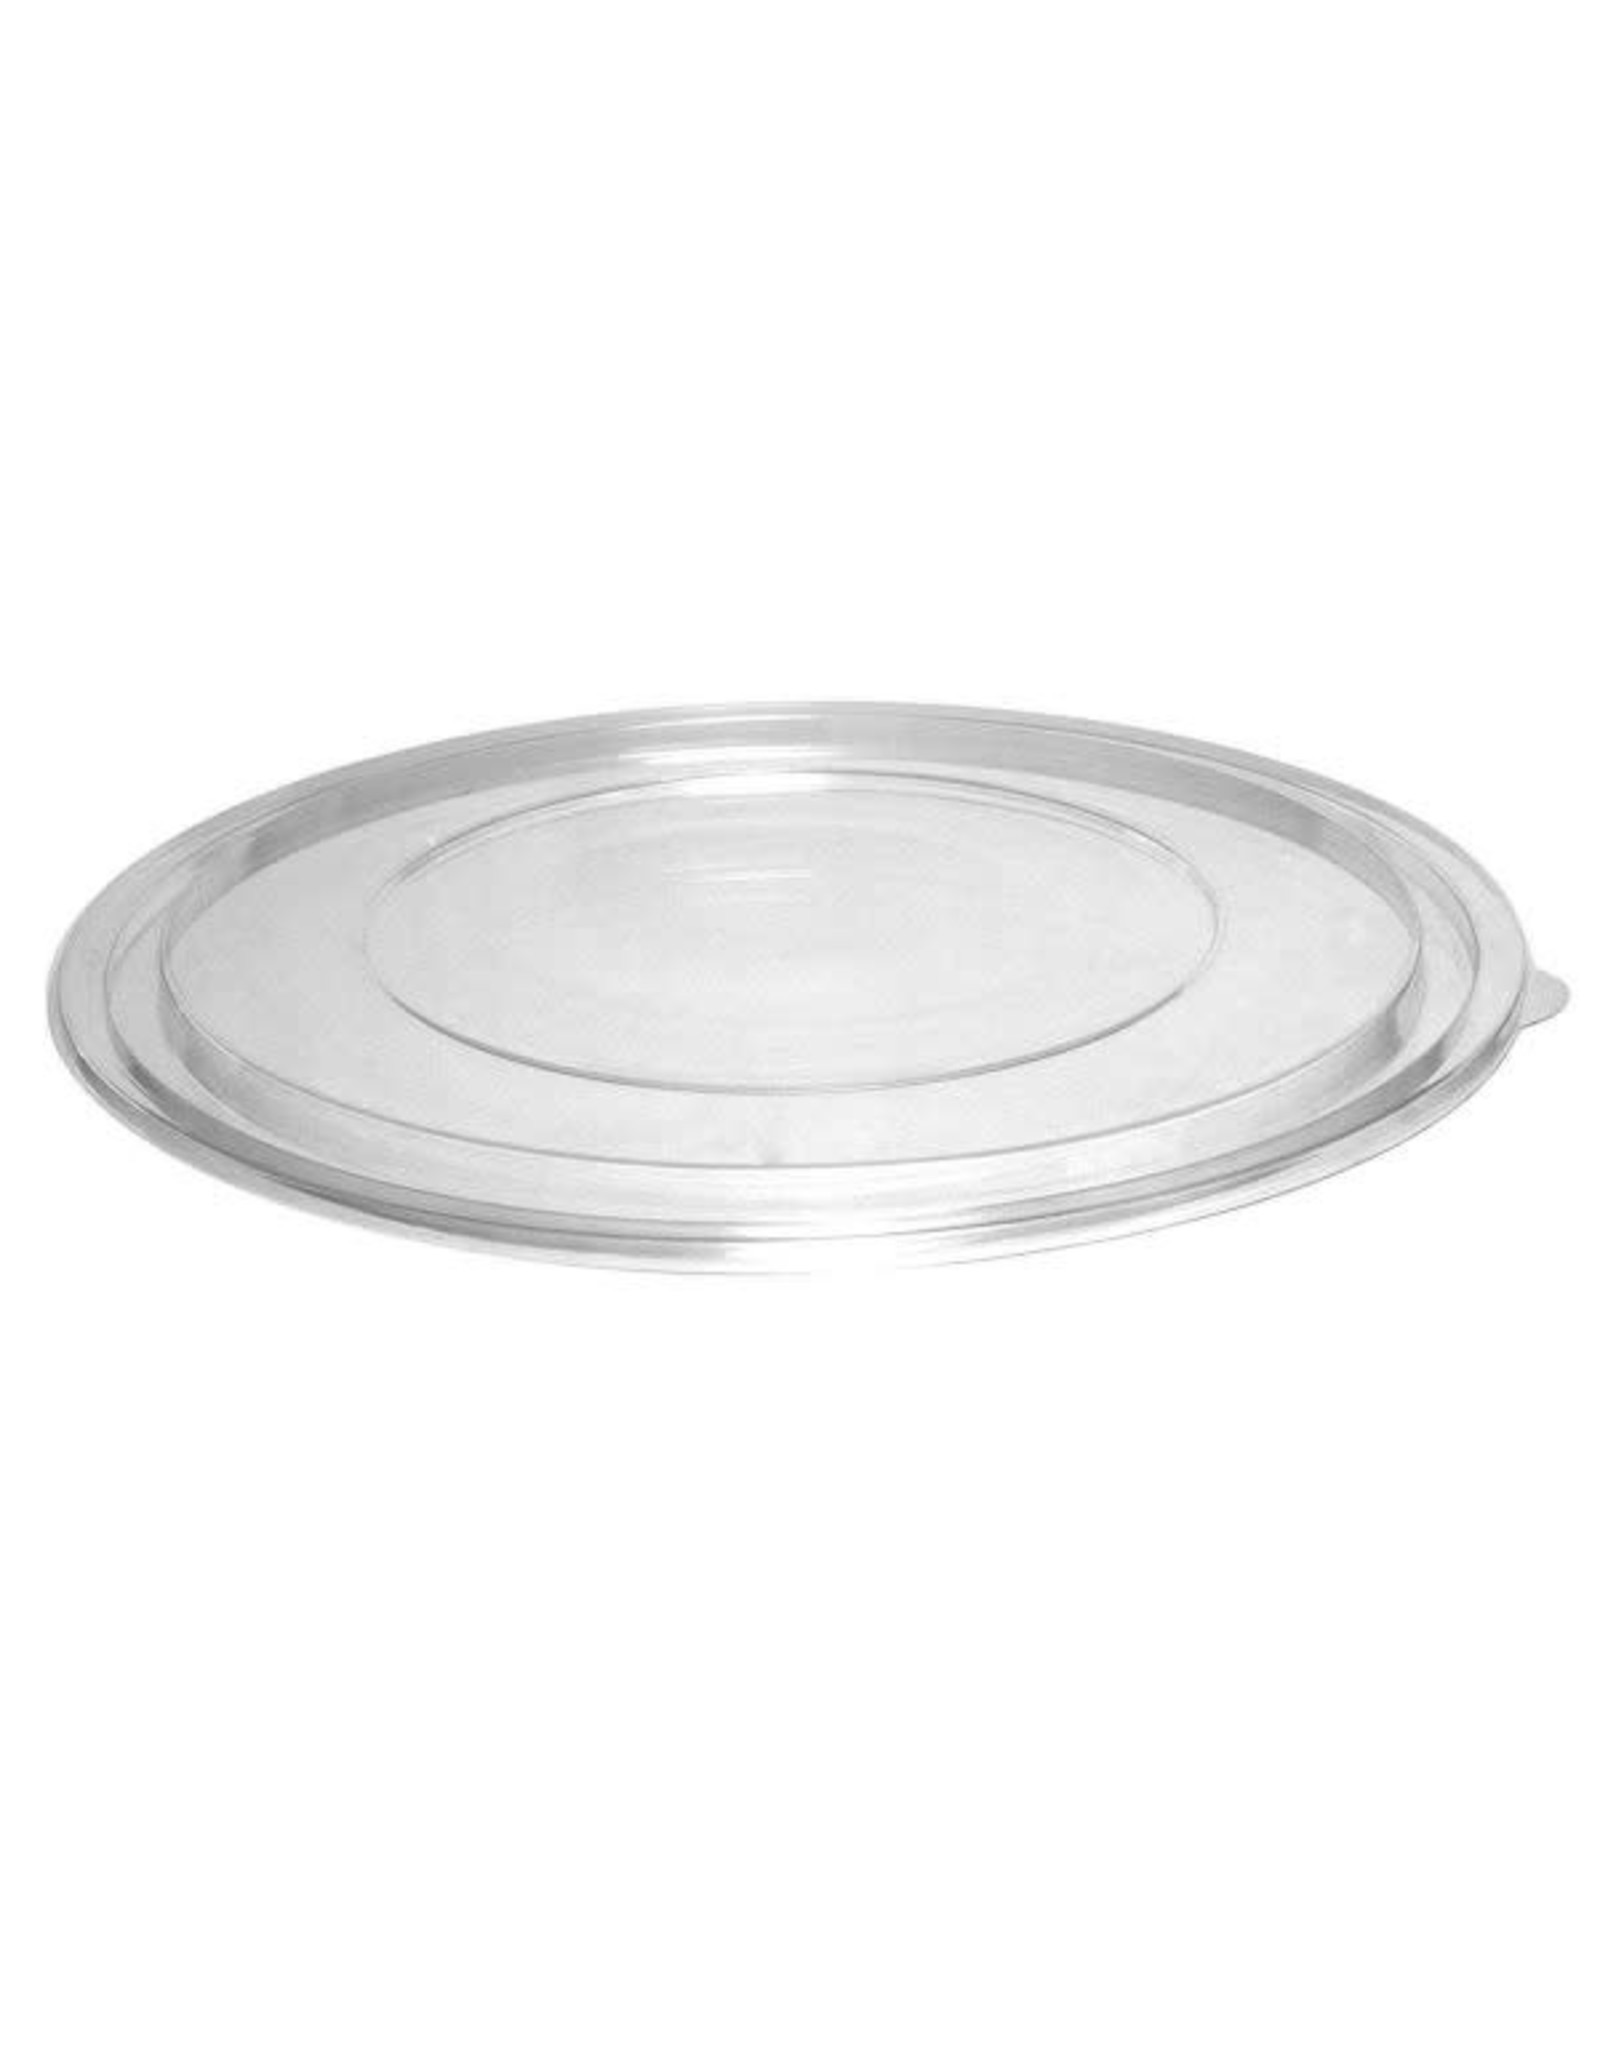 northwest 3200z Clear Lid - 1ct.